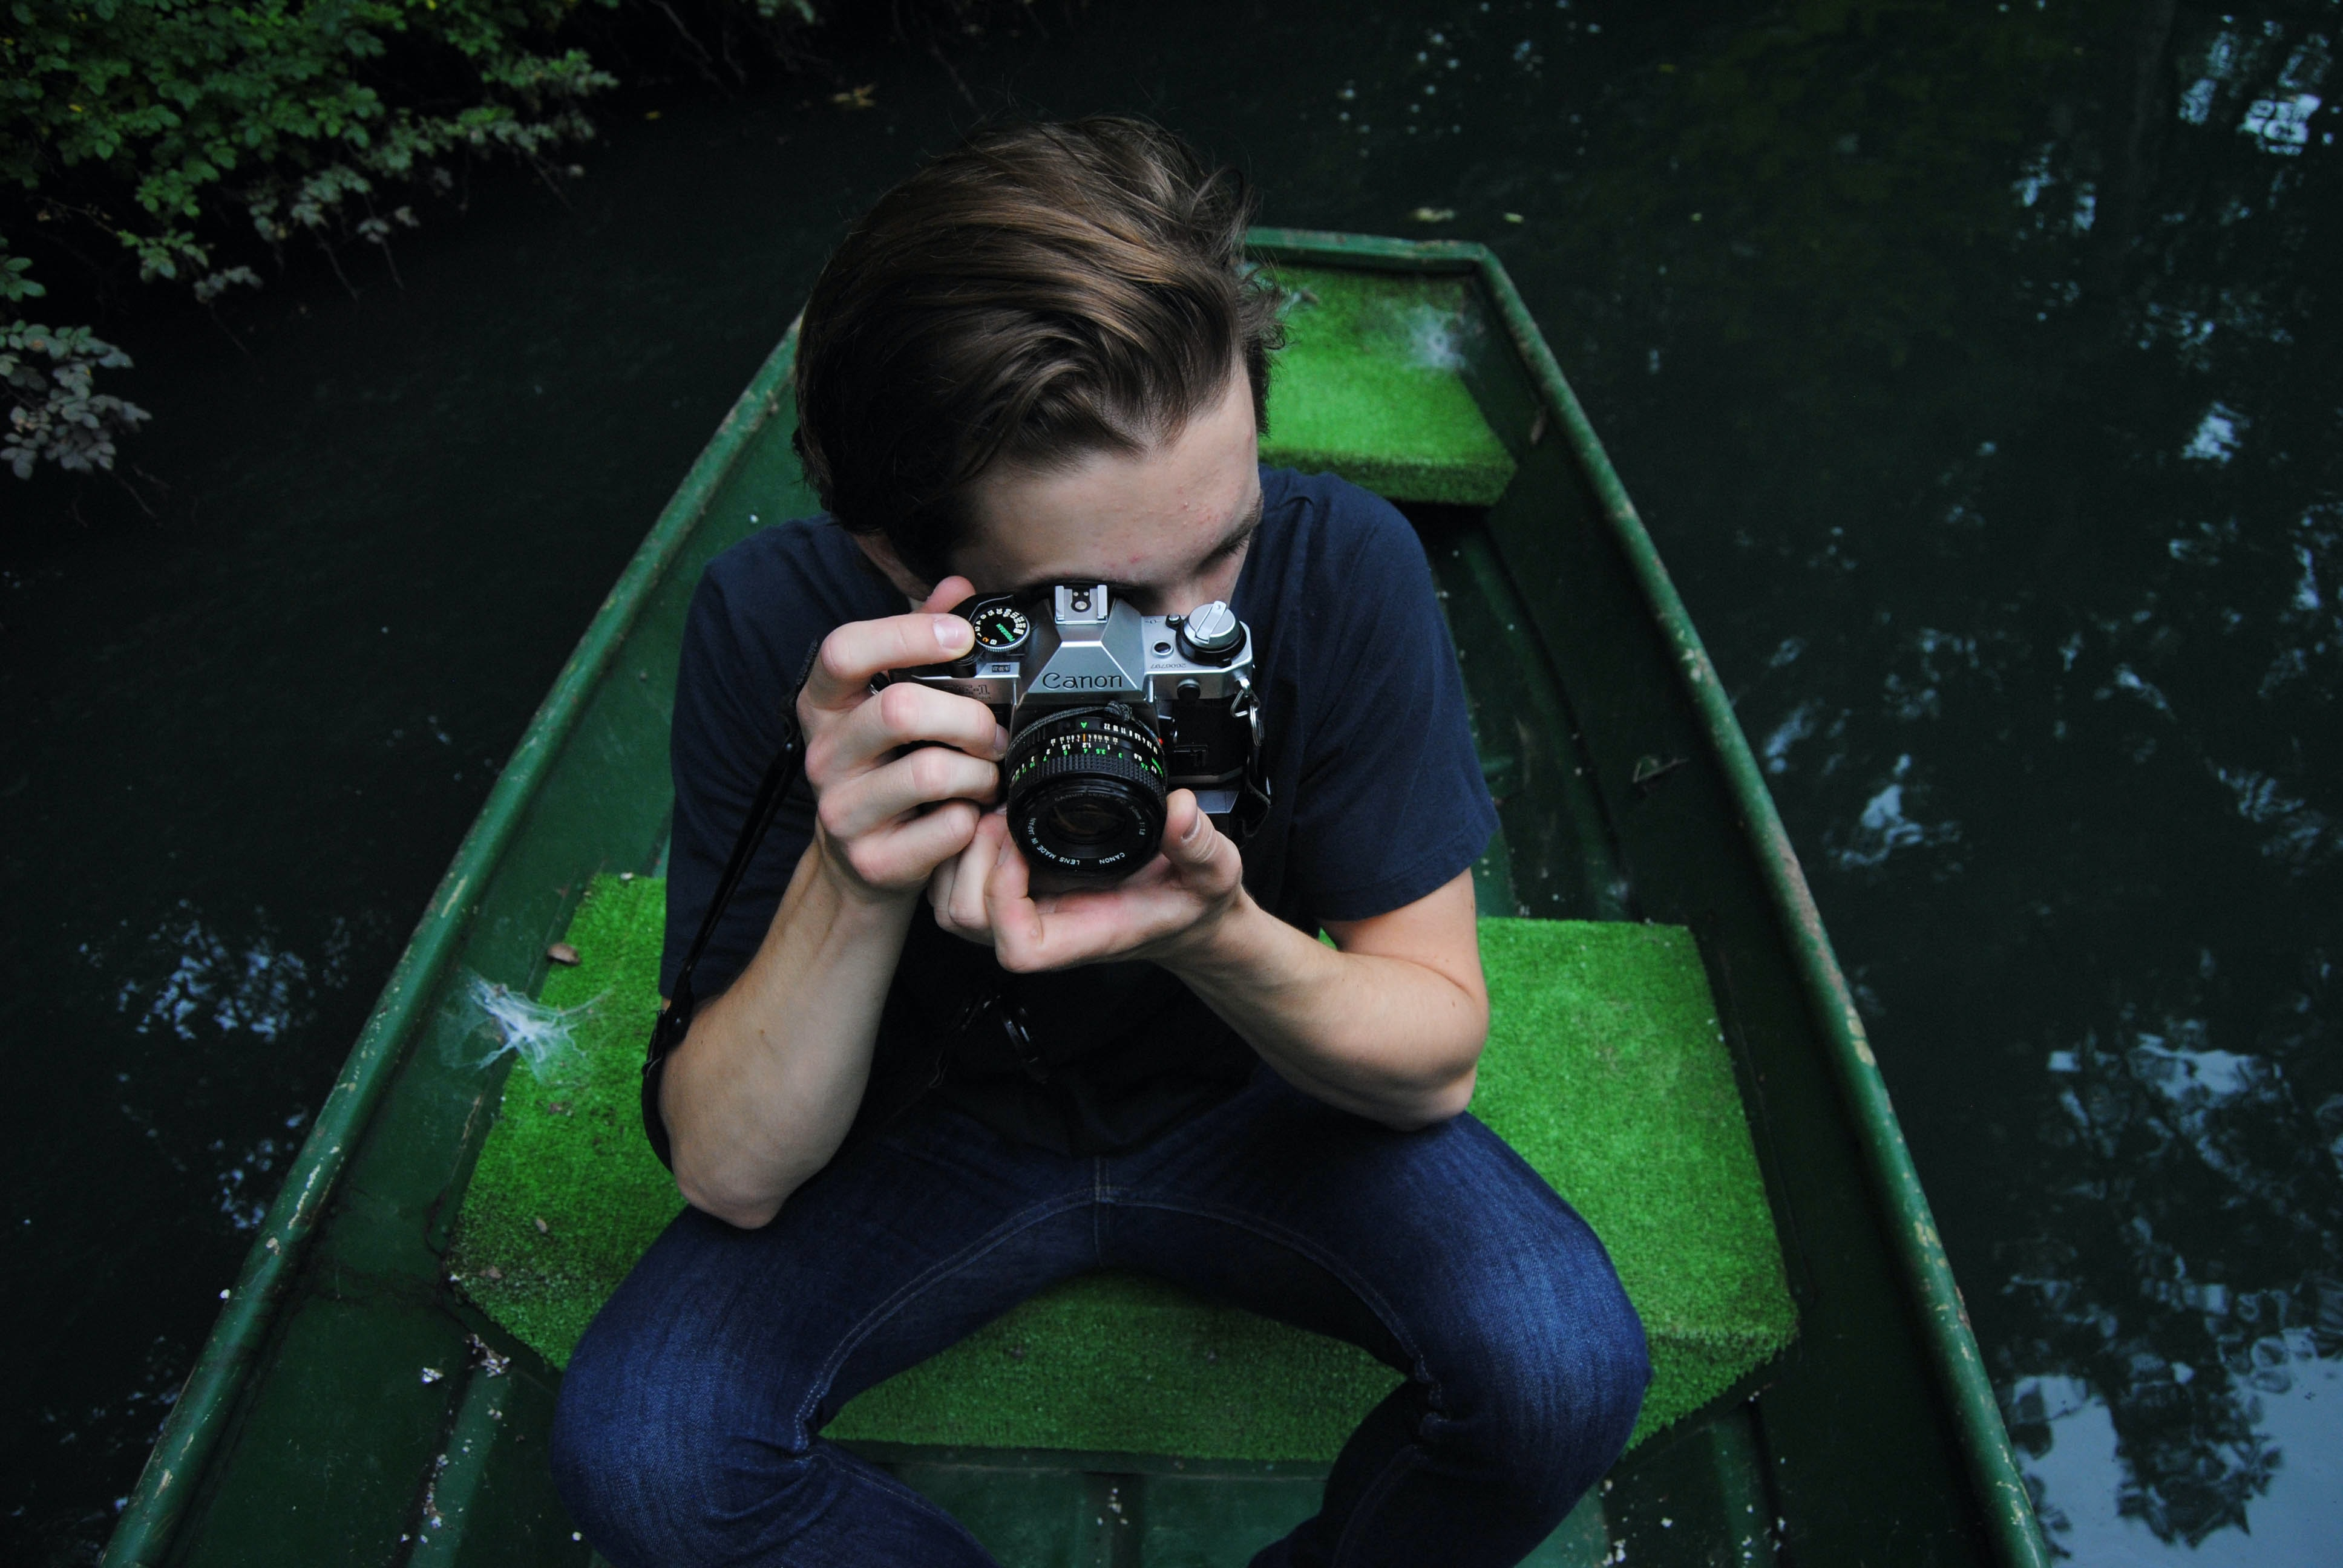 A man with a Canon camera in a green boat on a lake